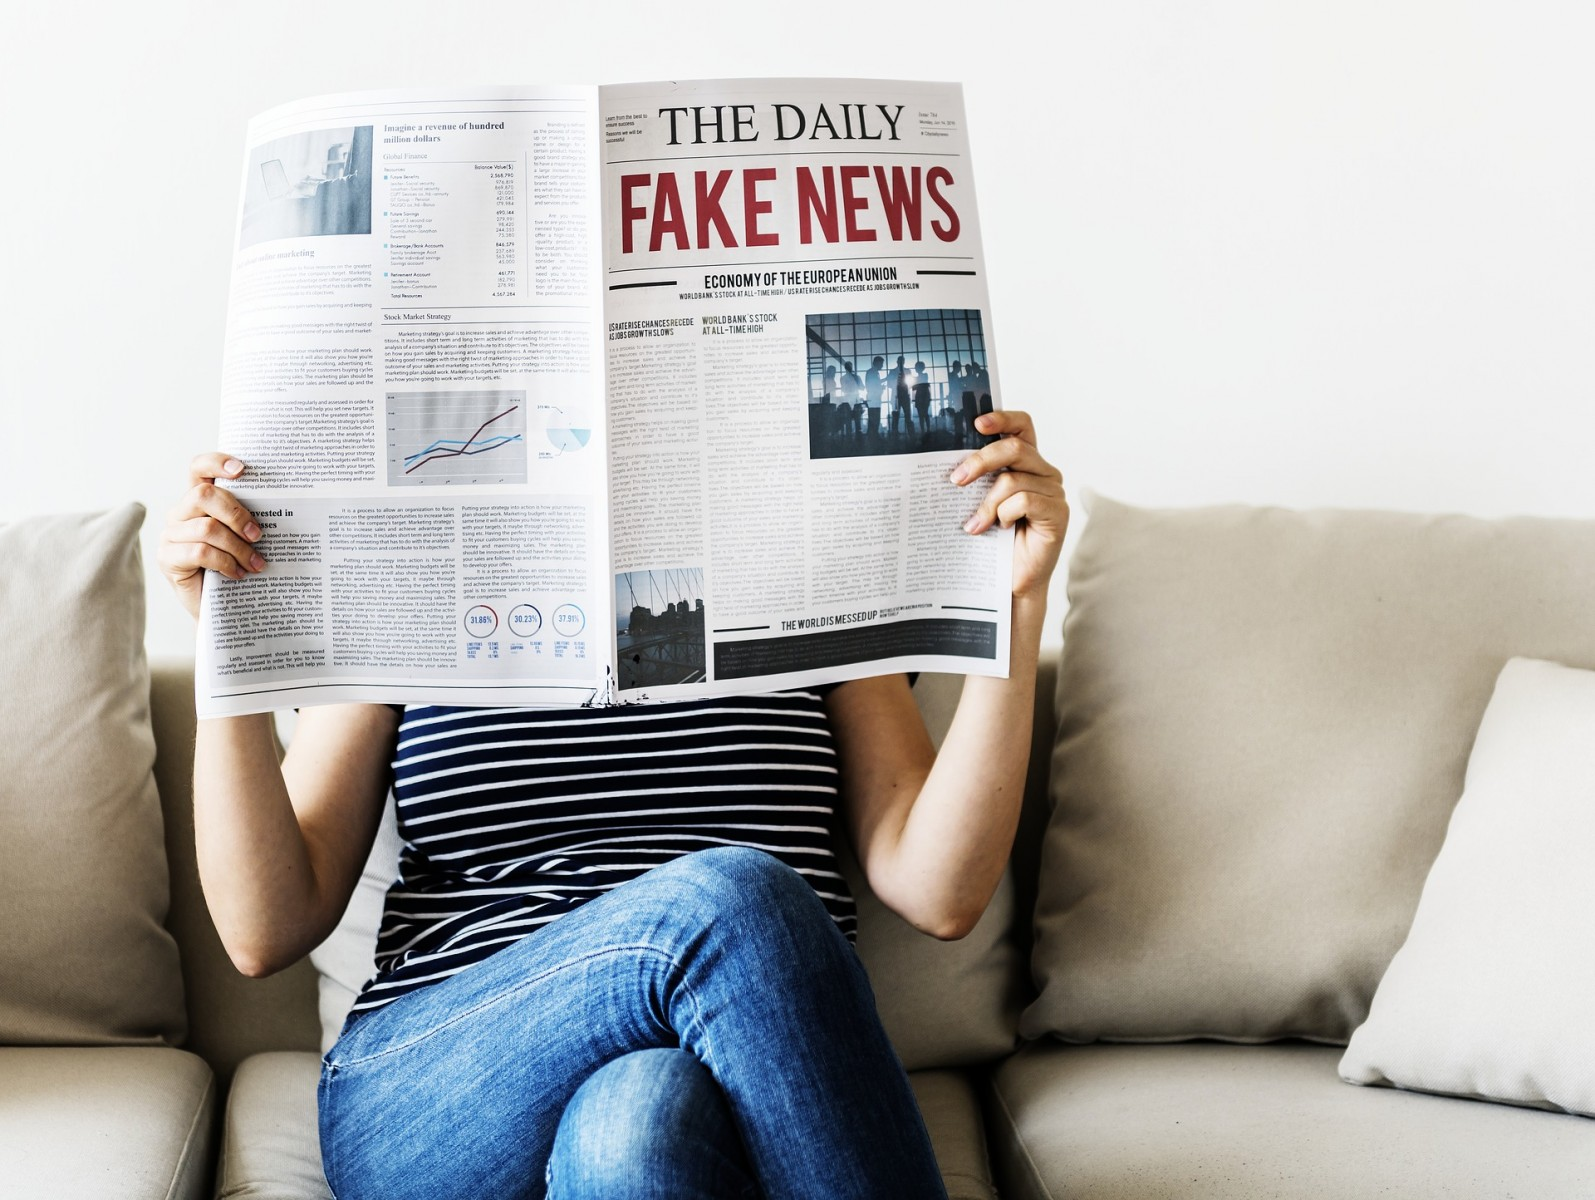 Technology cannot protect us from fake news